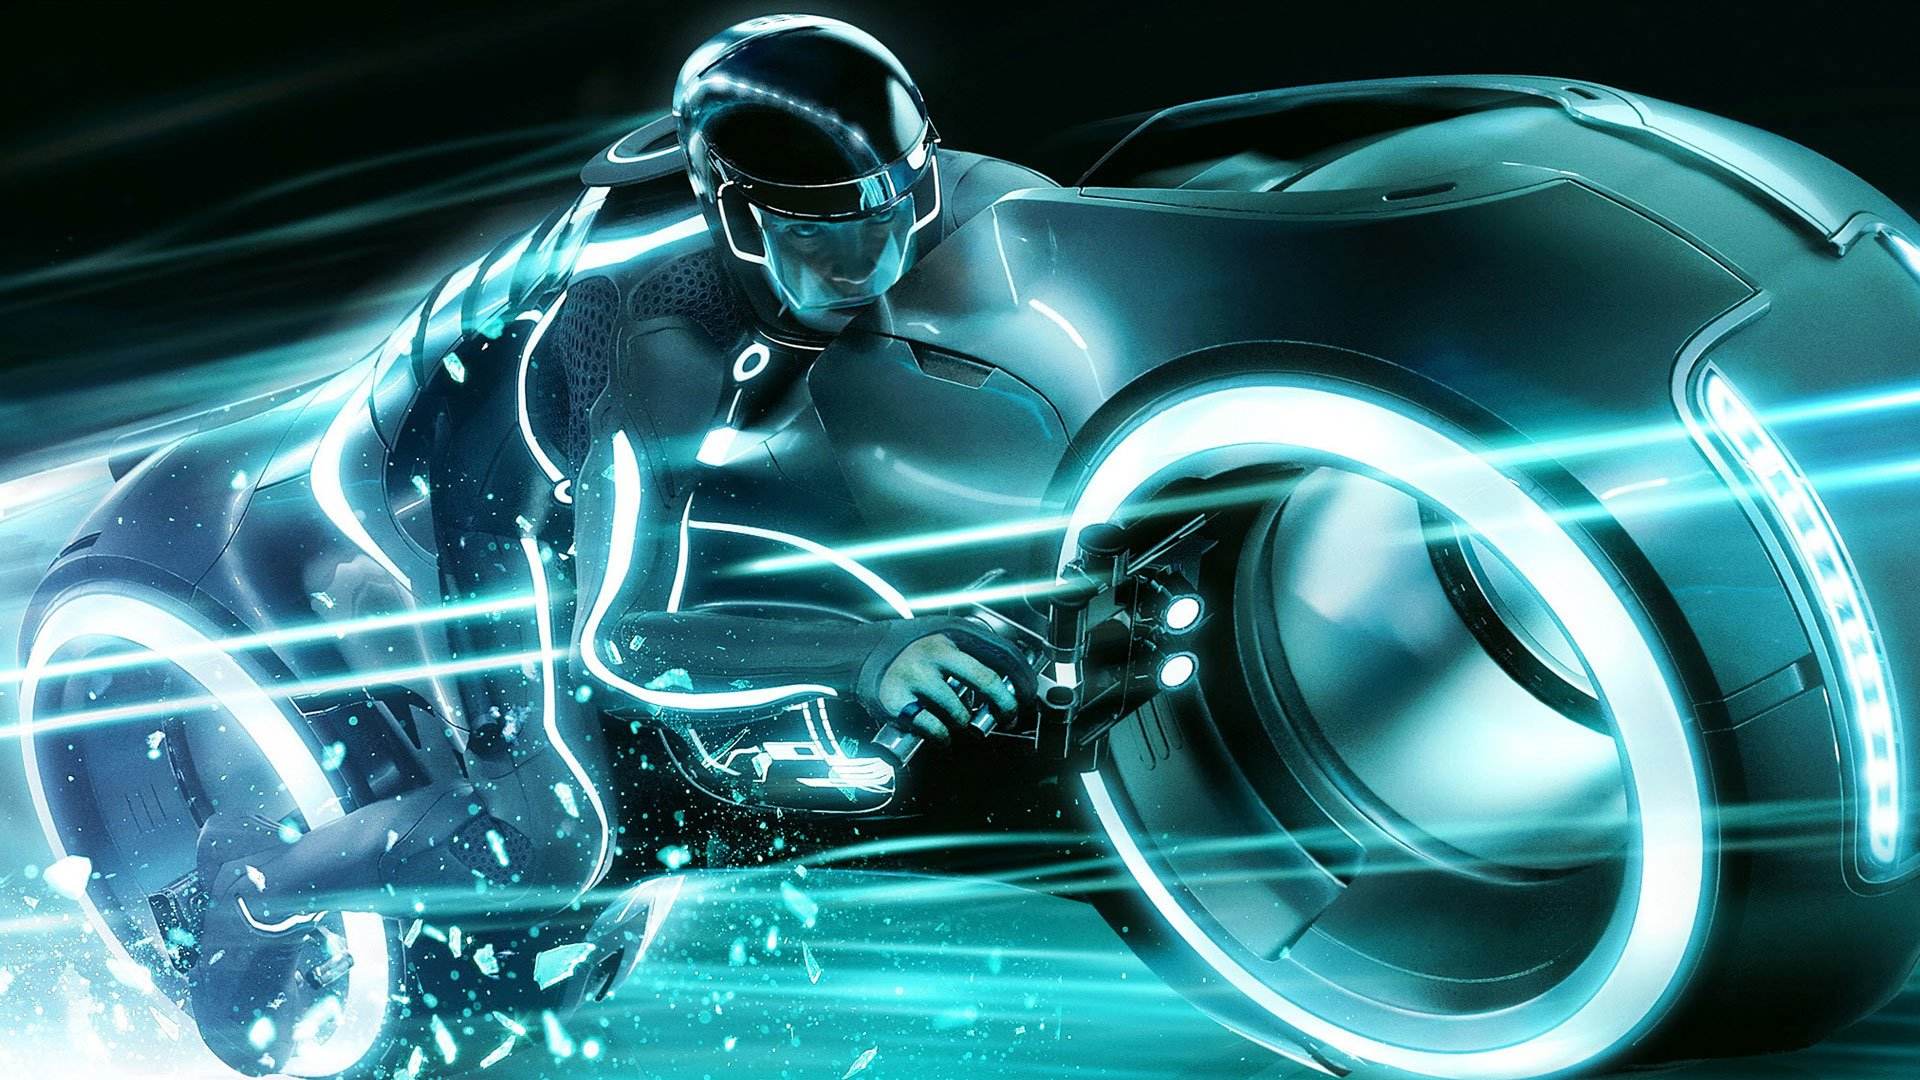 Tron Legacy Biker Full HD Wallpaper And Background Image